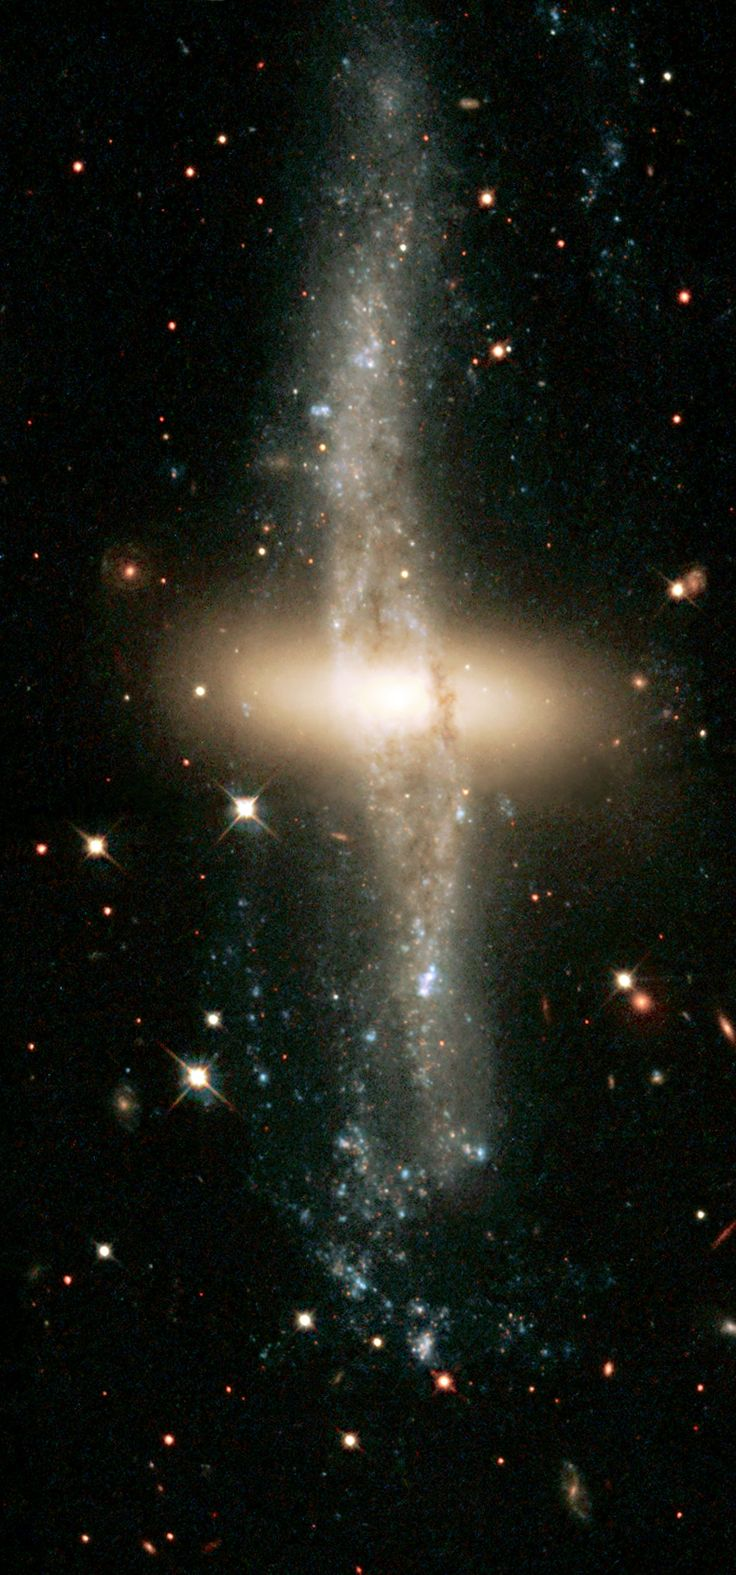 Located about 130 million light-years away, NGC 4650A is one of only 100 known polar-ring galaxies. - Credit: The Hubble Heritage Team (AURA/STScI/NASA/ESA)